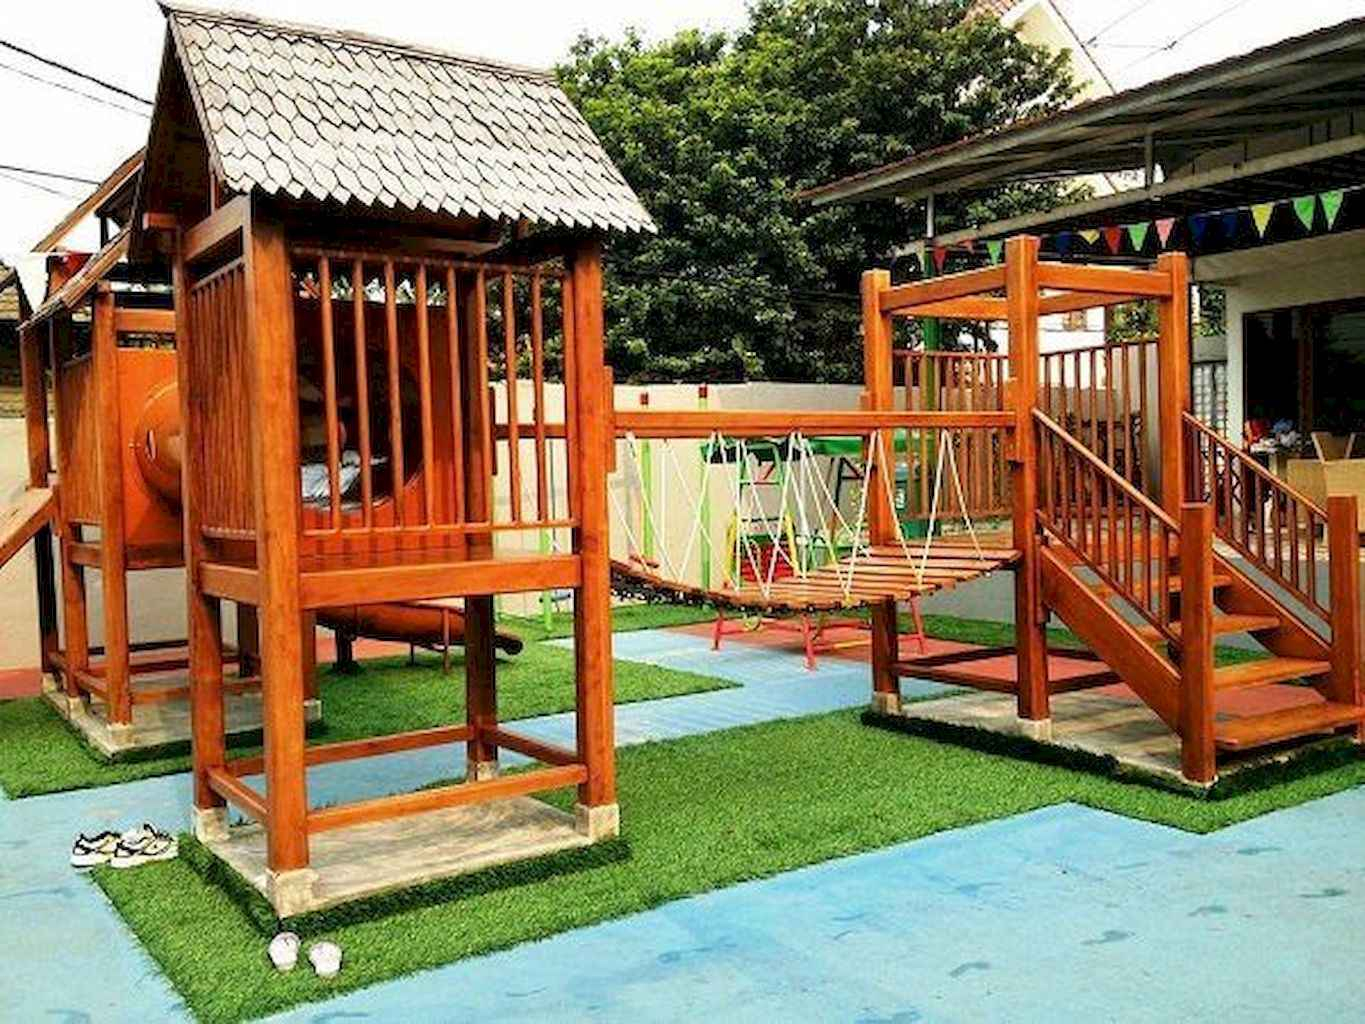 65 Creative Small Backyard Playground Kids Design Ideas Frontbackhome intended for 14 Awesome Designs of How to Improve Backyard Playground Ideas